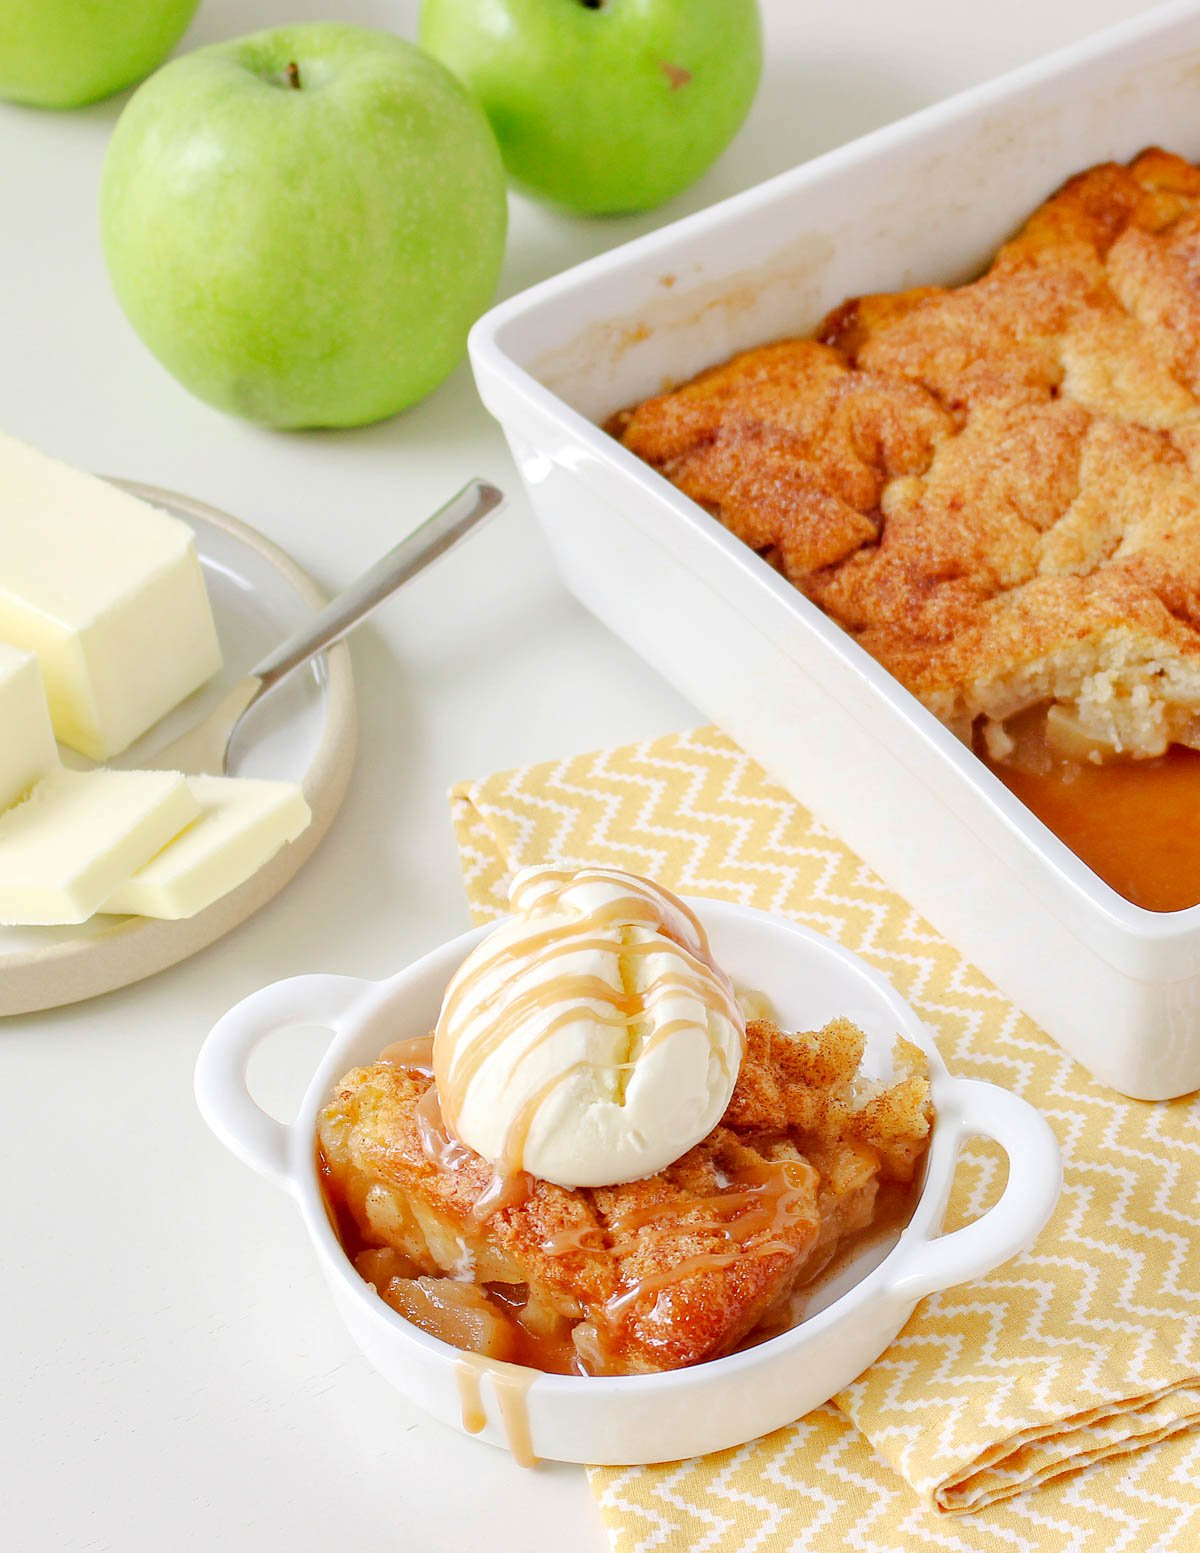 caramel apple cobbler topped with ice cream and caramel sauce near baking dish and plate of butter.